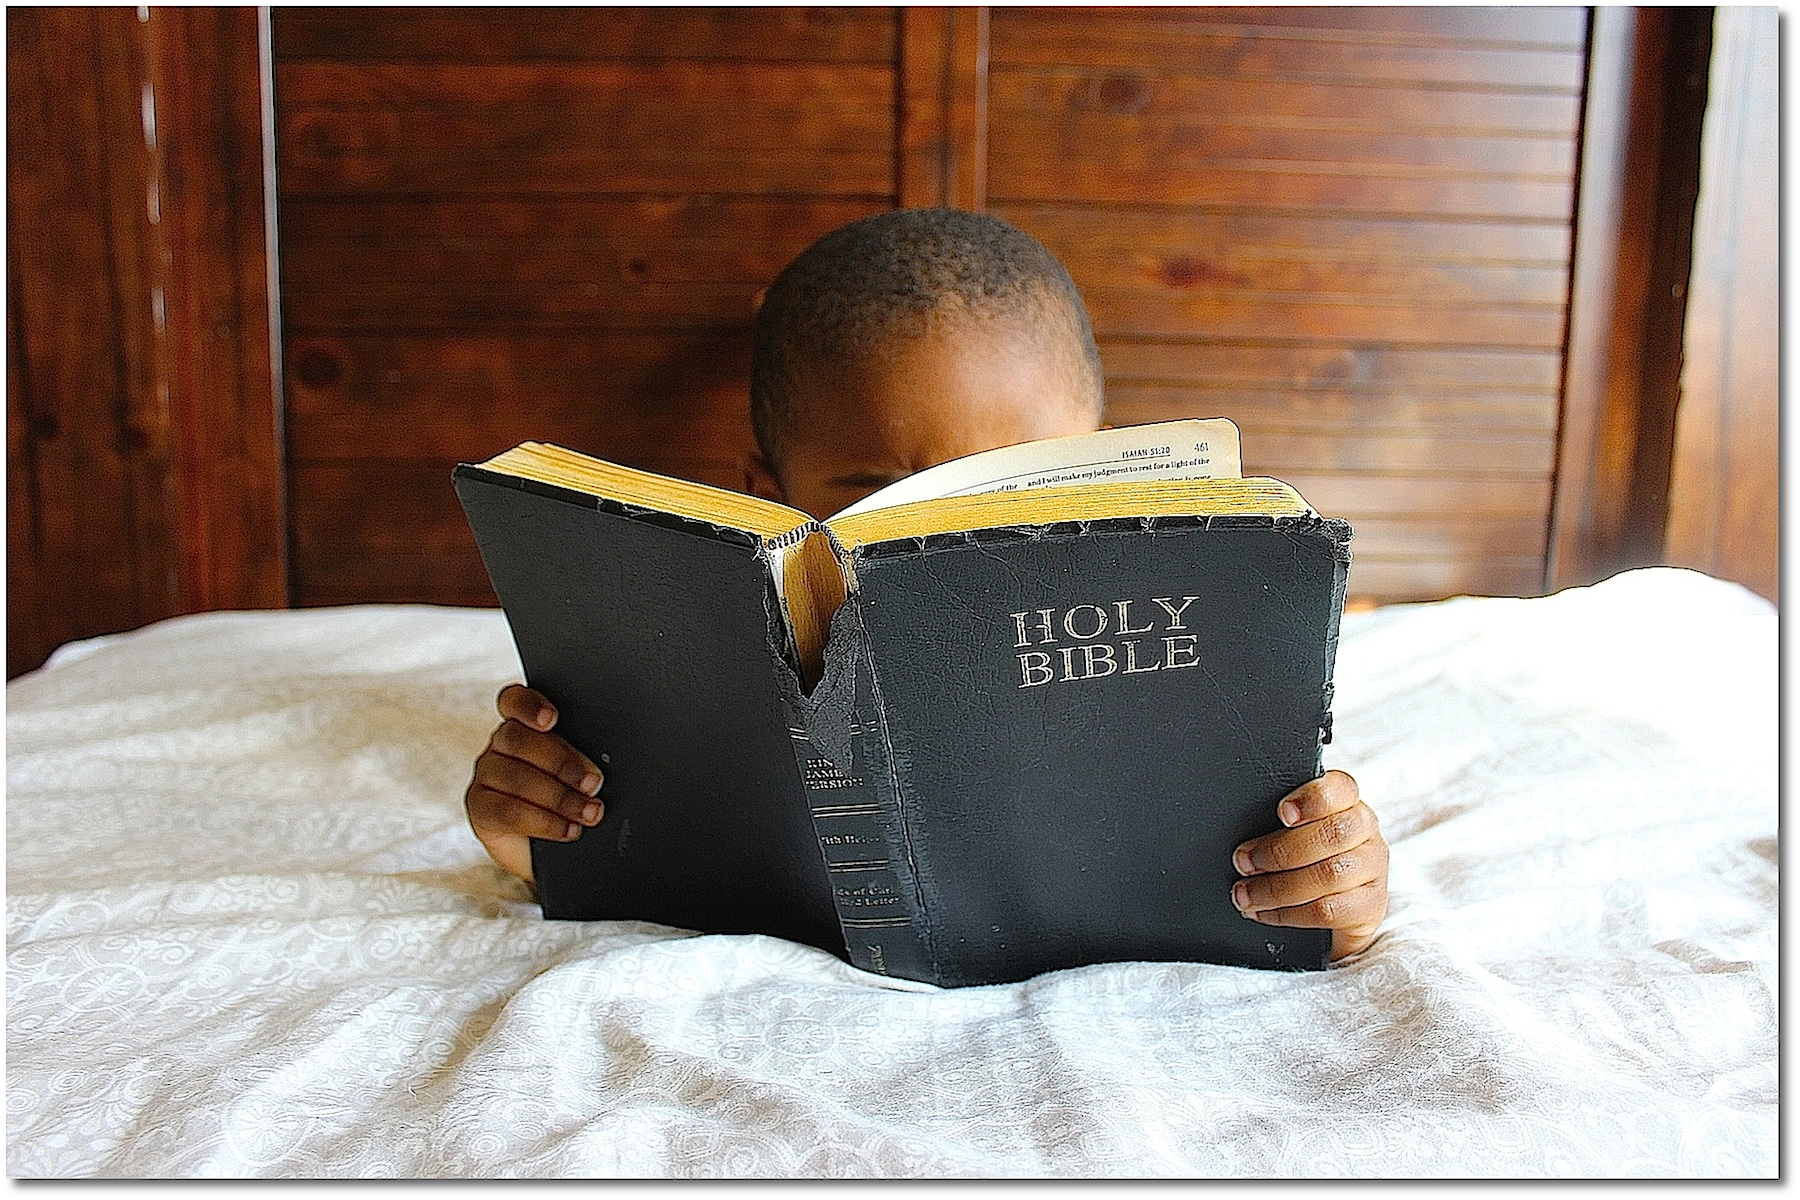 Poster Photo Art: A Boy and His Bible